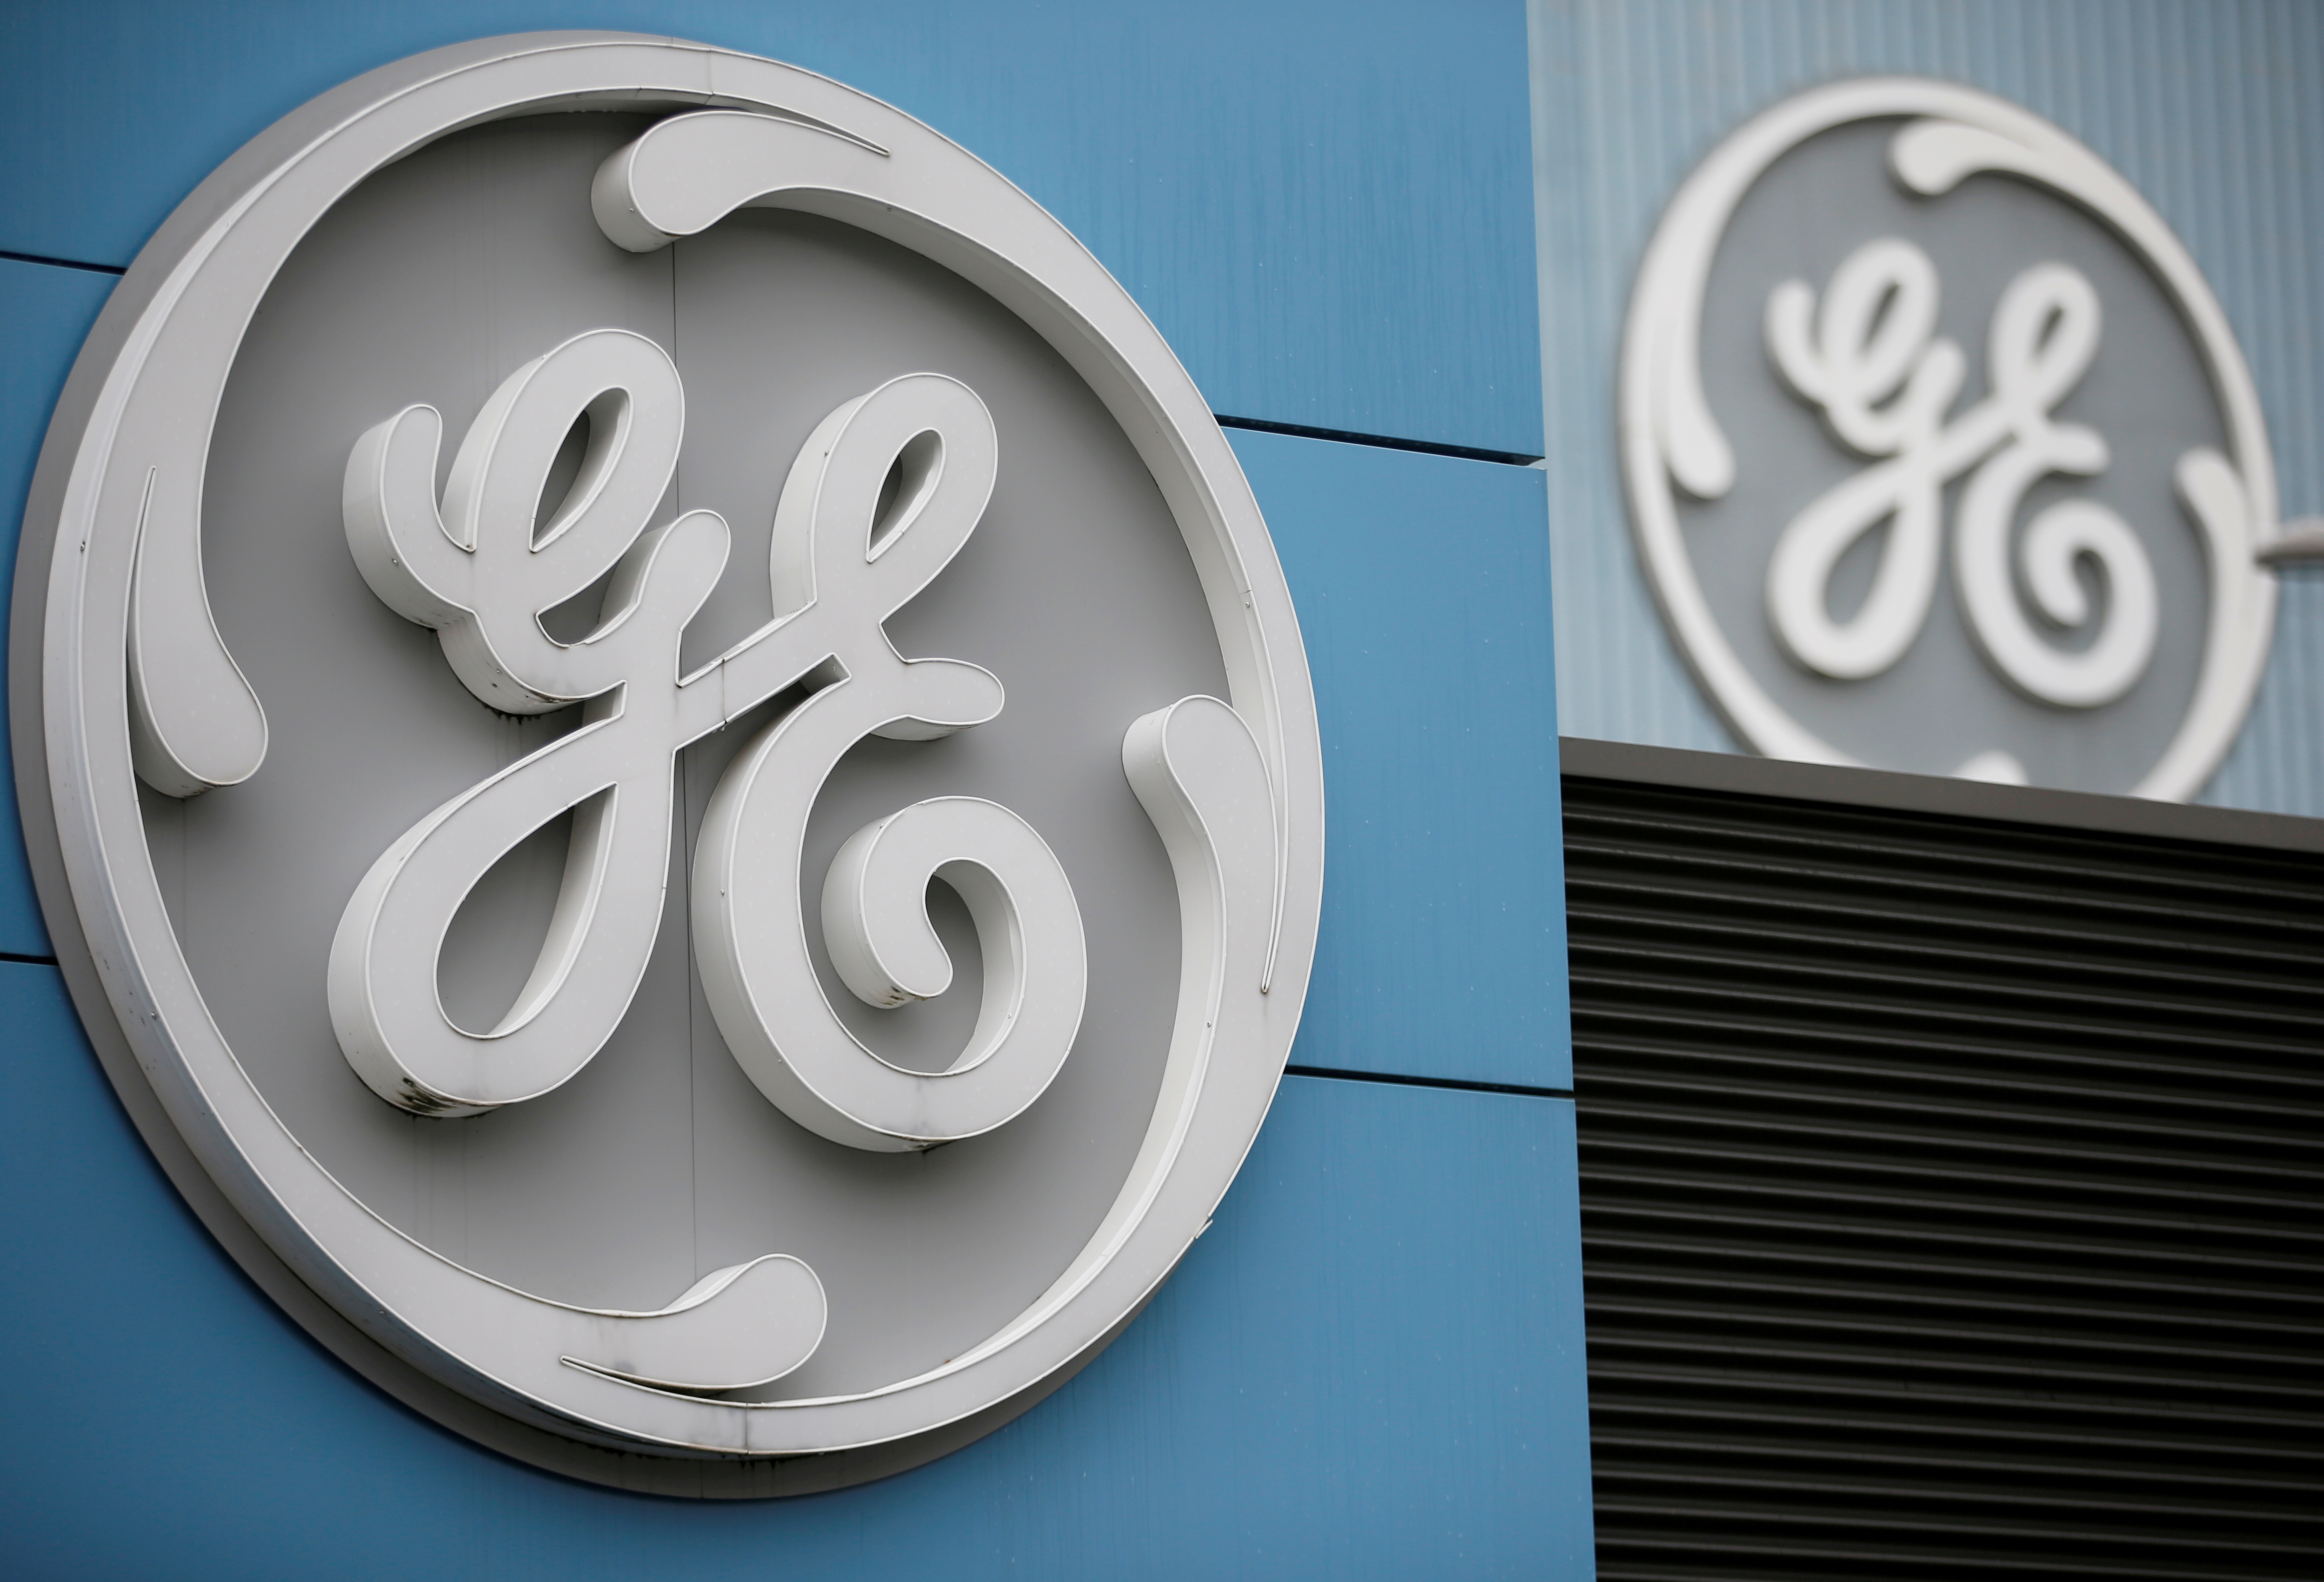 The logo of U.S. conglomerate General Electric is seen on the company building in Belfort, France, October 19, 2019. REUTERS/Vincent Kessler//File Photo